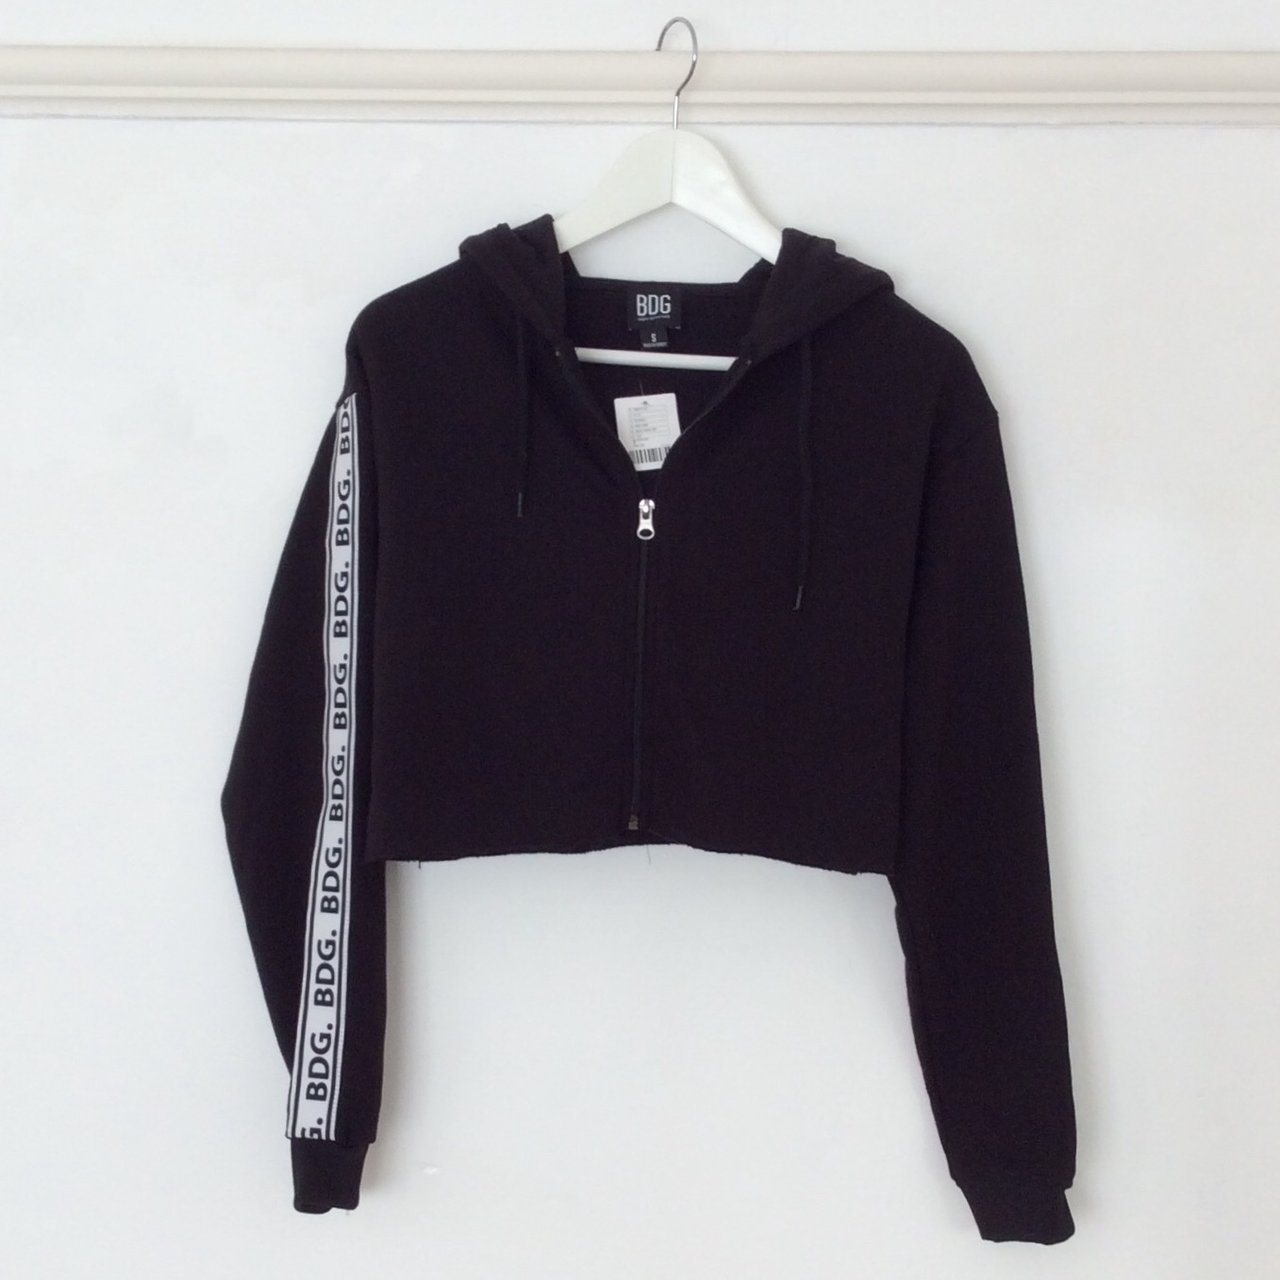 8a0ba9784ef8 Black cropped Urban Outfitters zip-up hoodie. White stripe - Depop